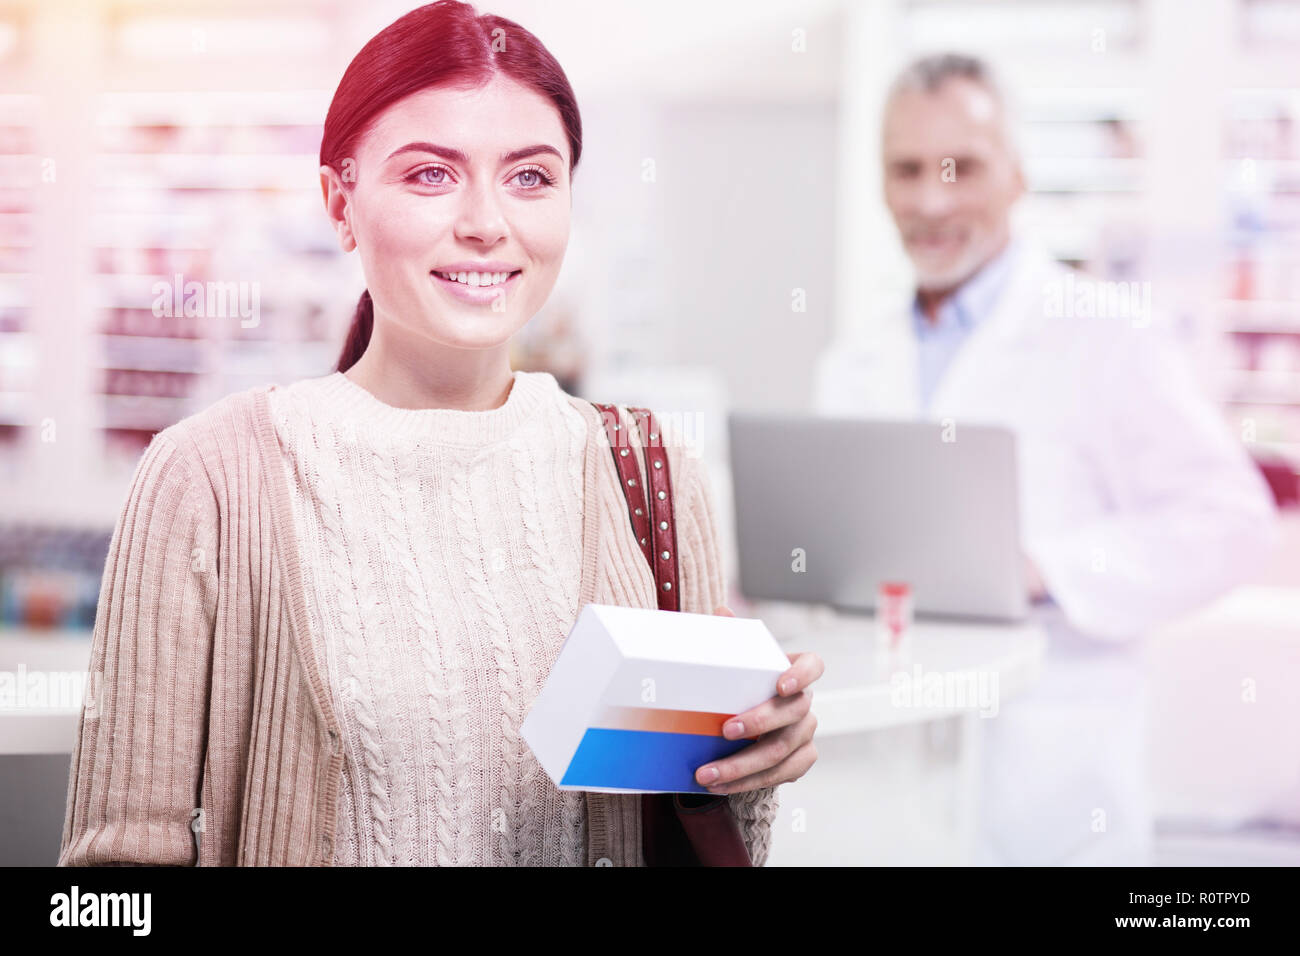 Beaming woman carrying a cure and feeling confident about her health - Stock Image